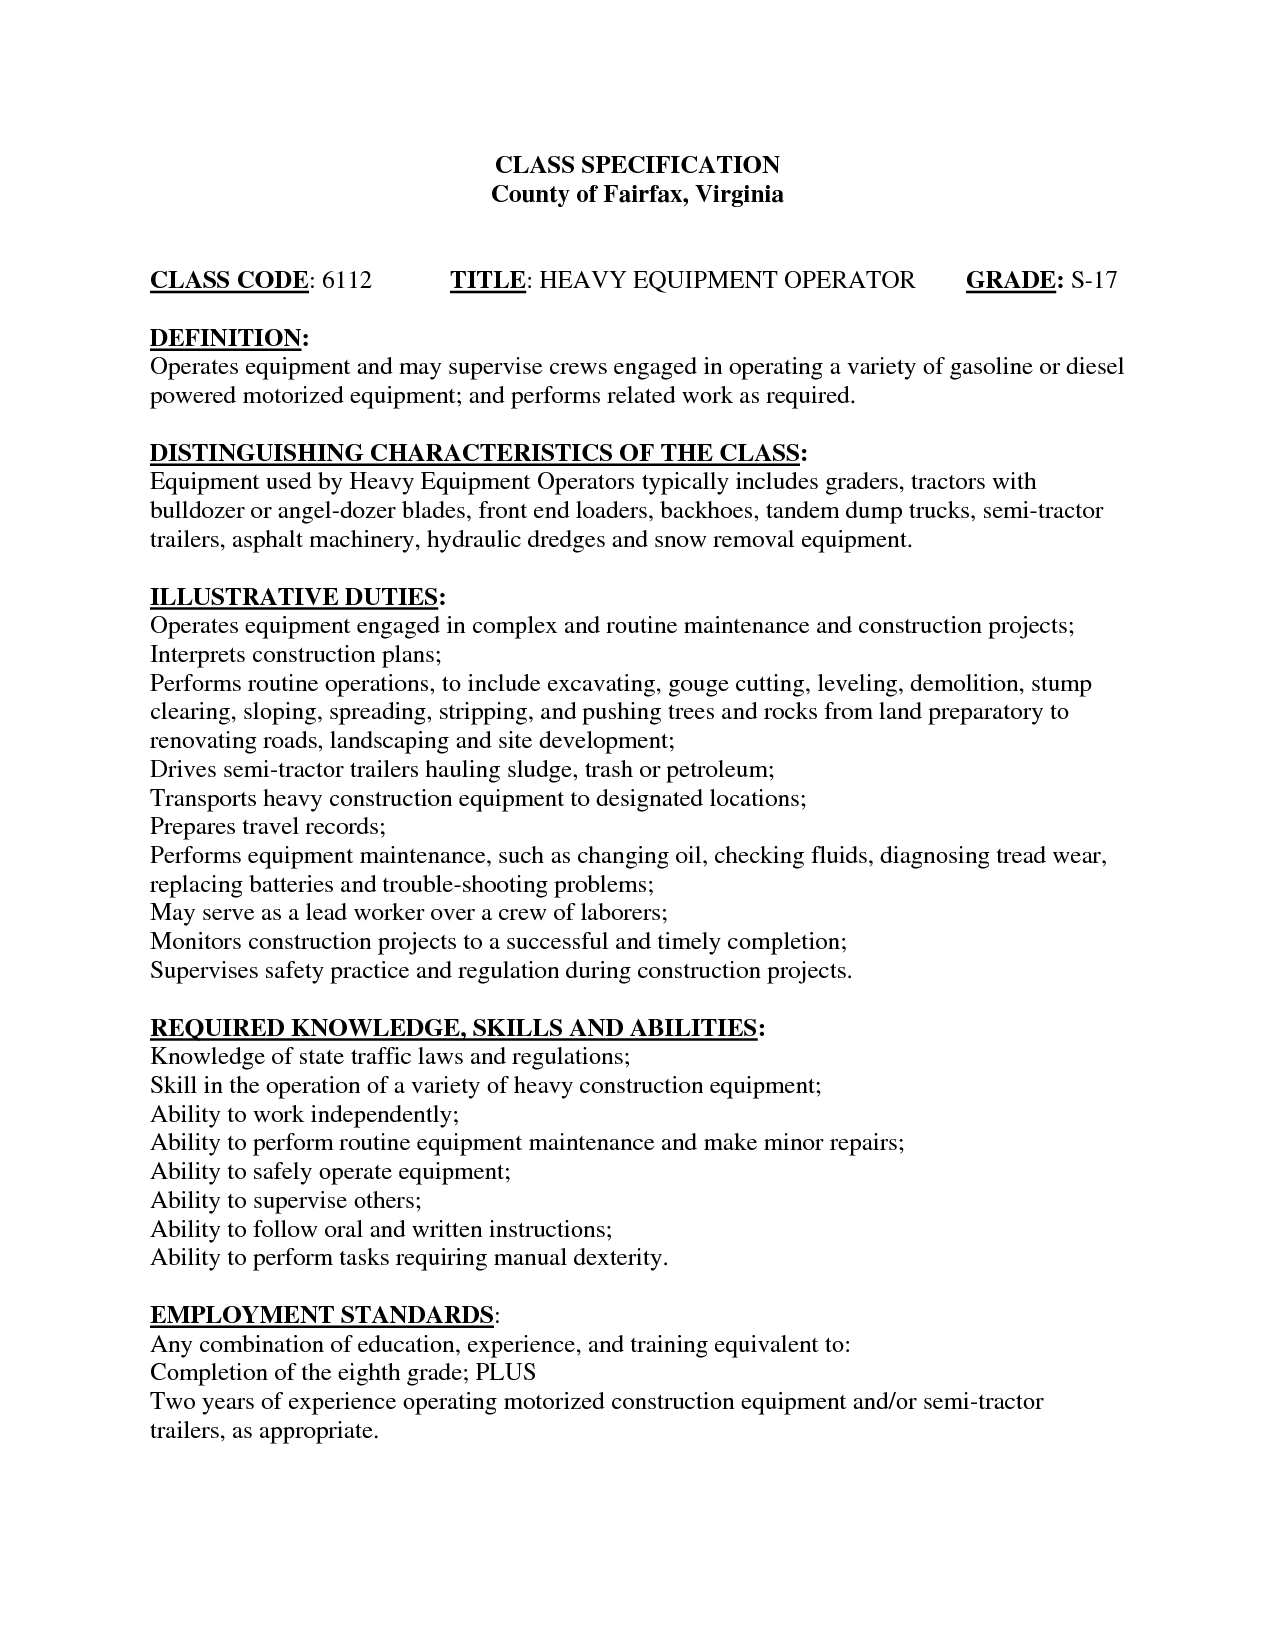 forklift resume 100 machinist resume cover letter - Machinist Resume Template